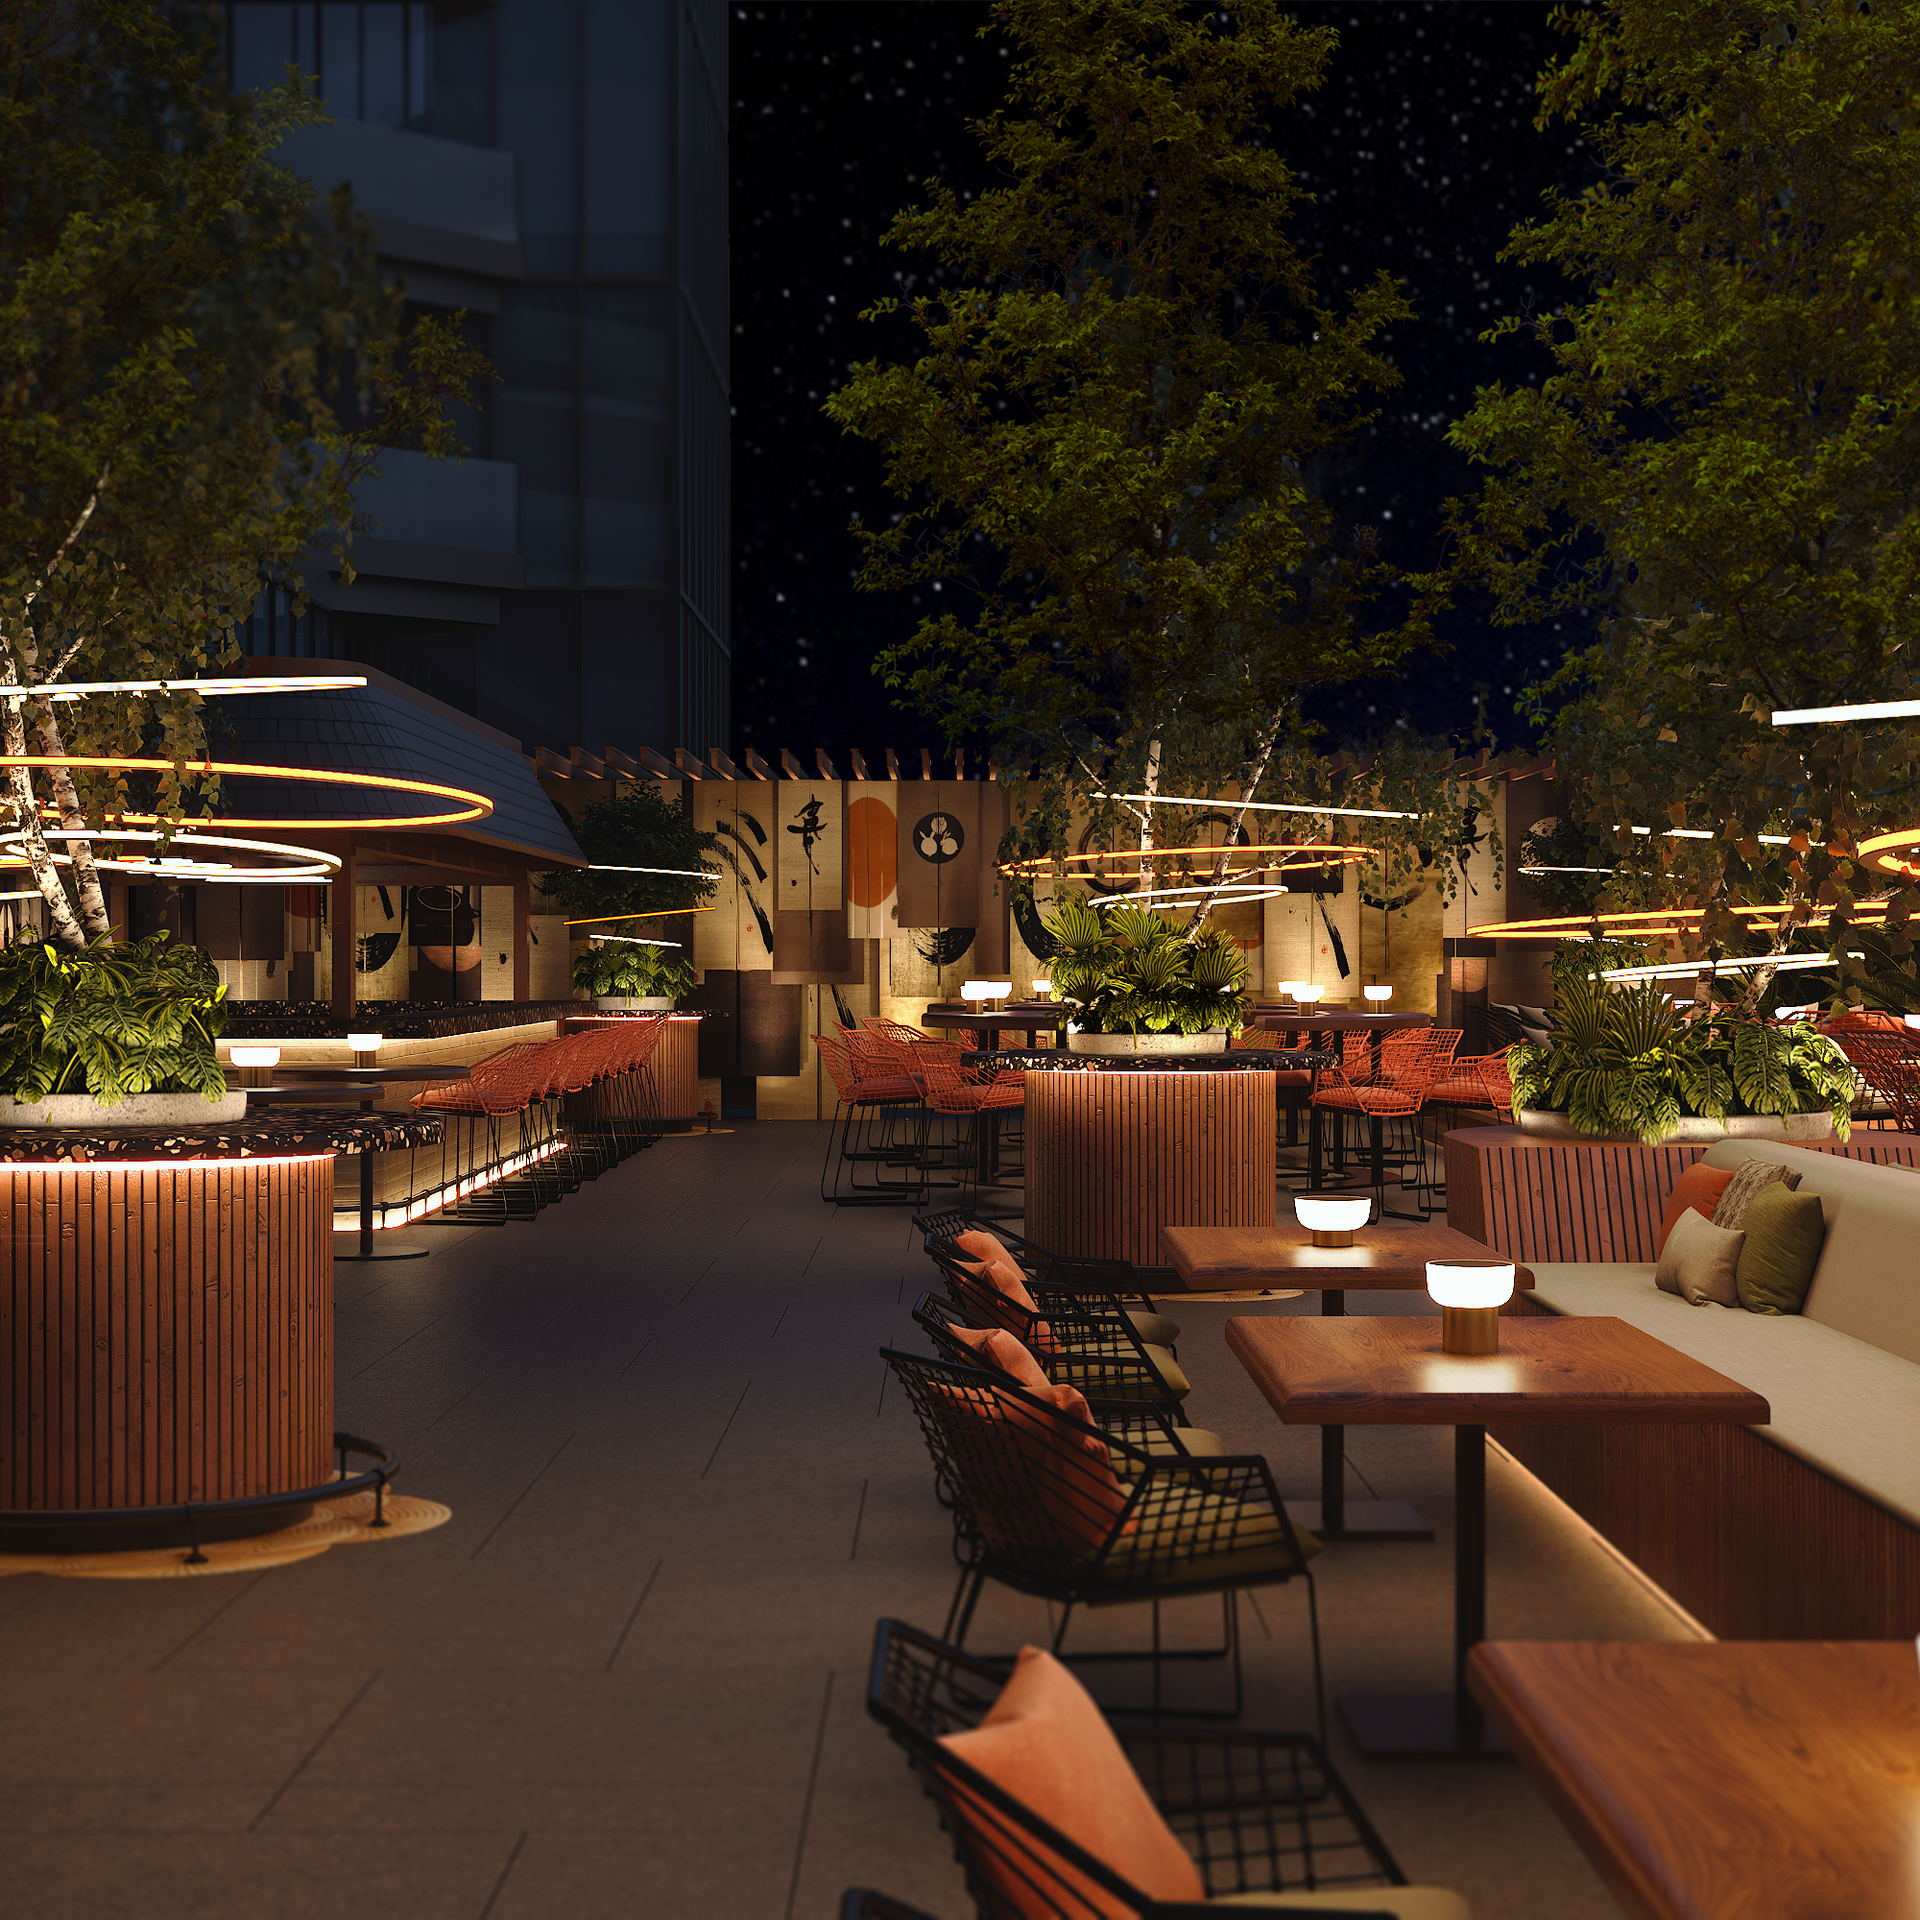 Fooma - Casual Asian restaurant and terrace